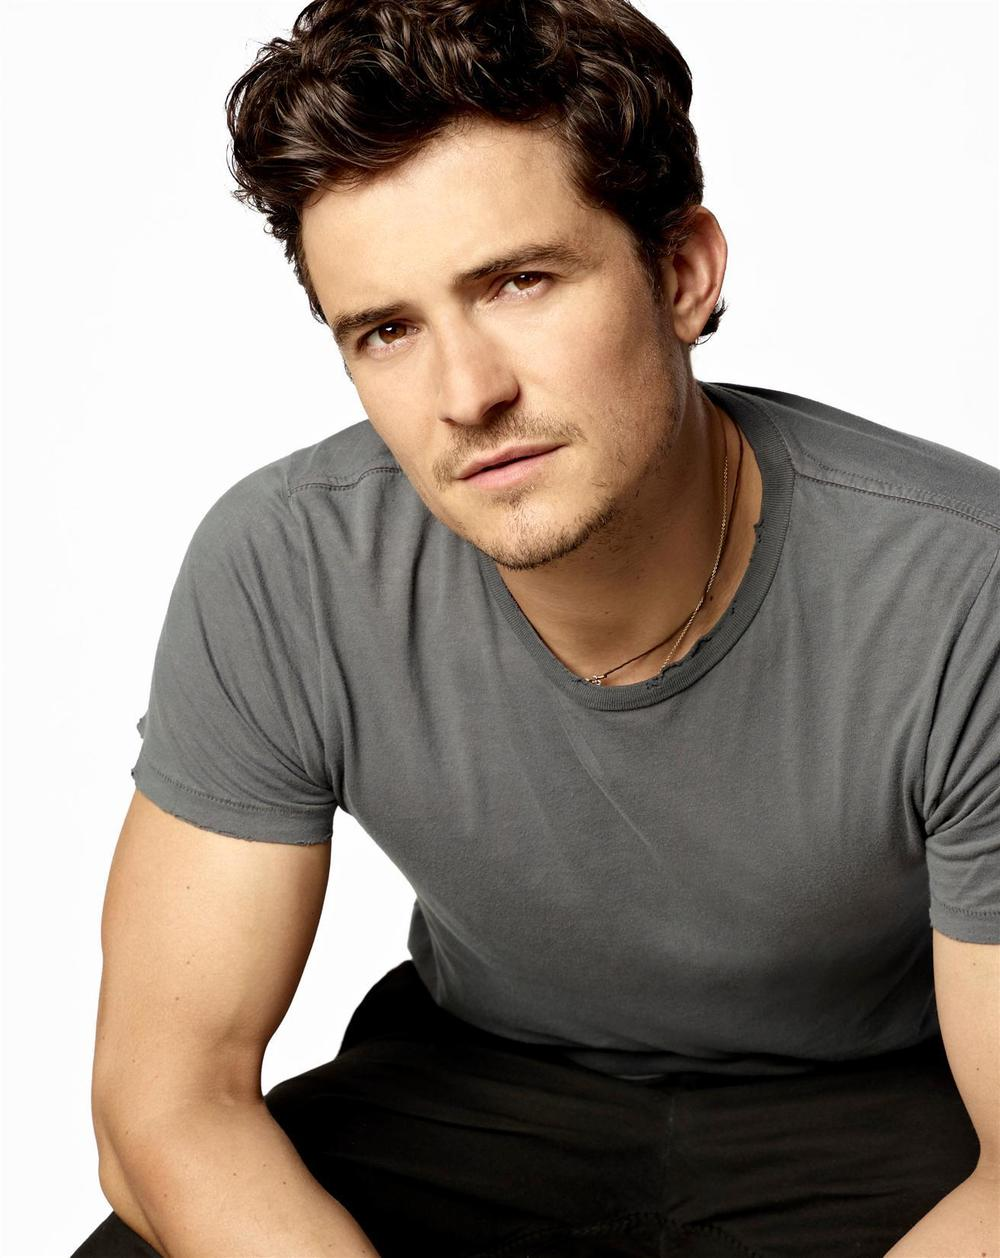 Orlando Bloom press shoot by Carter Smith — SHAY NIELSEN CASTING